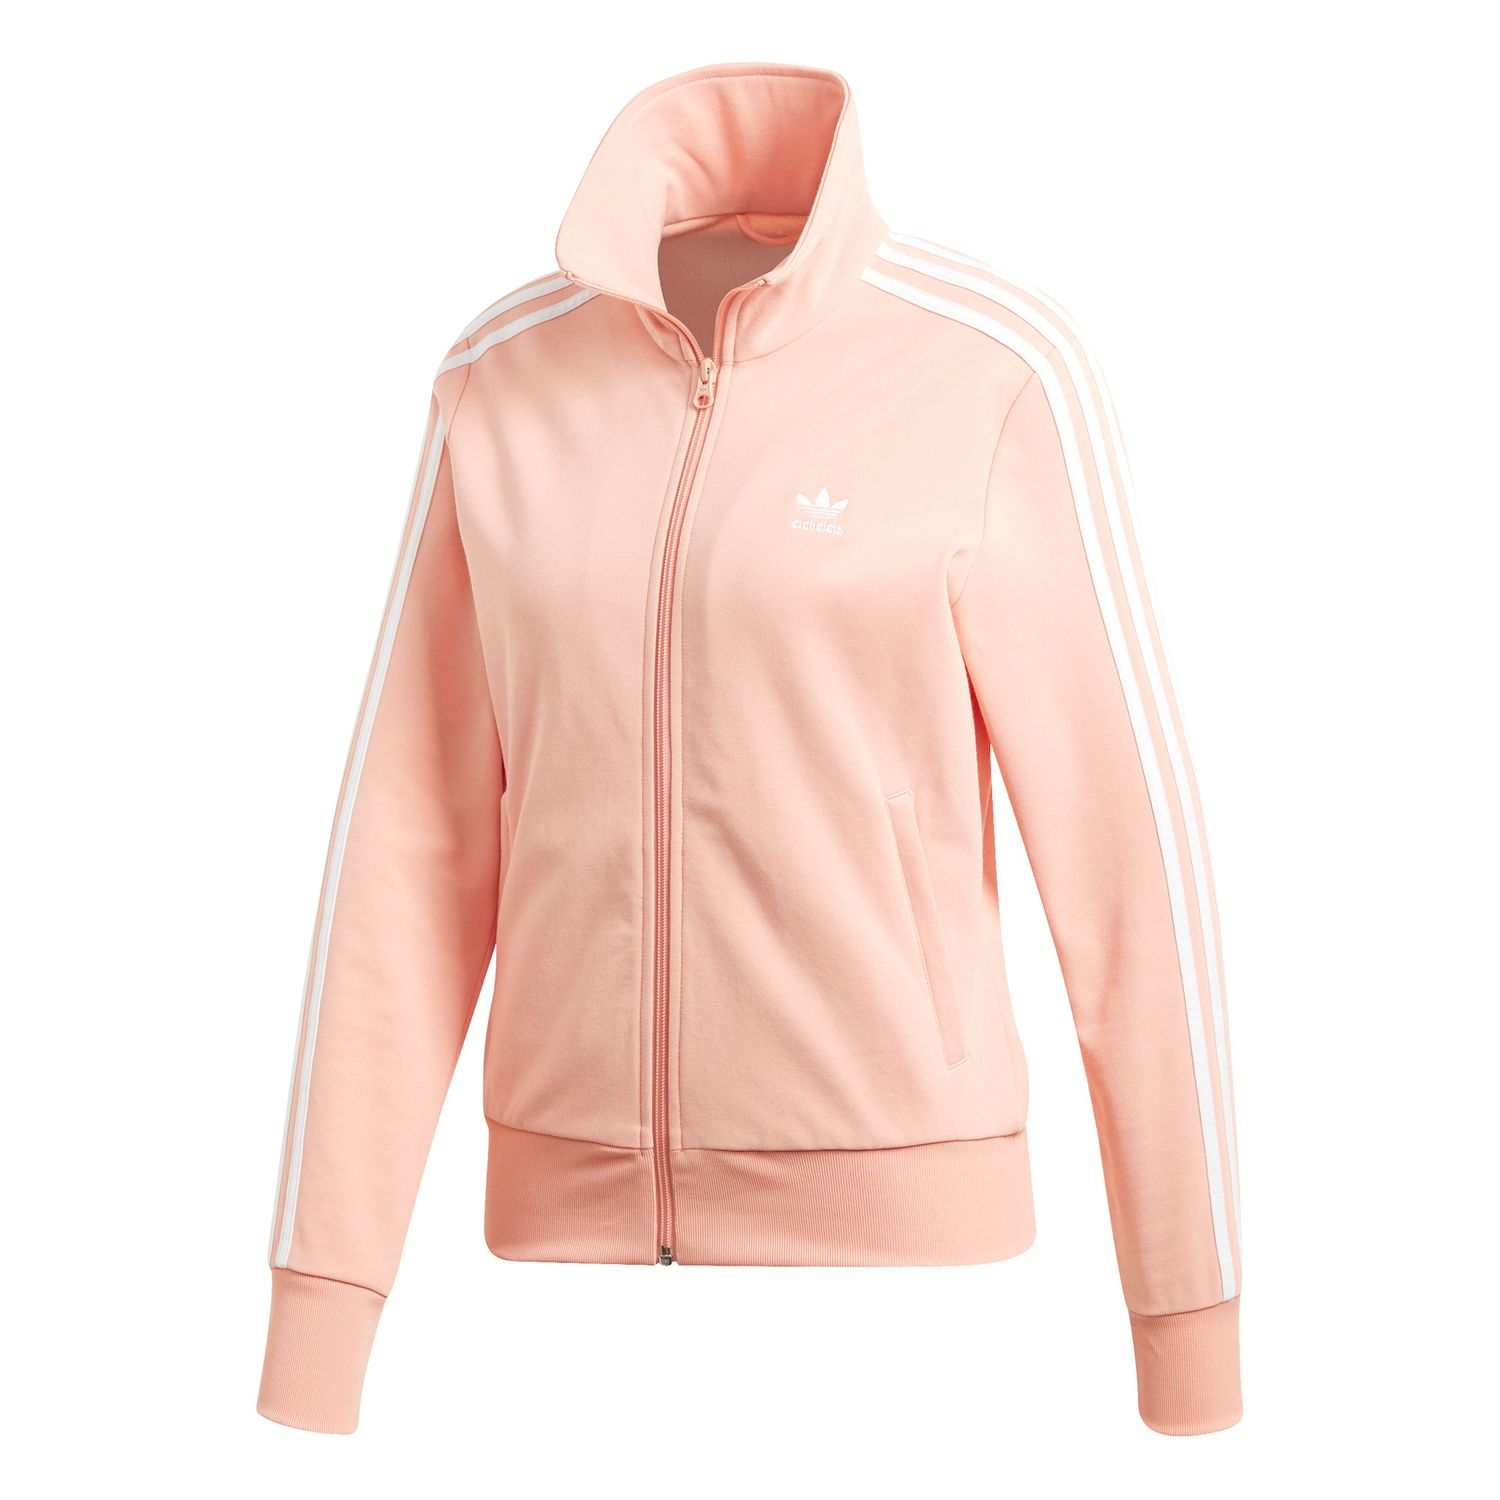 adidas Originals Track Top Damen Jacke dust pink DV2564